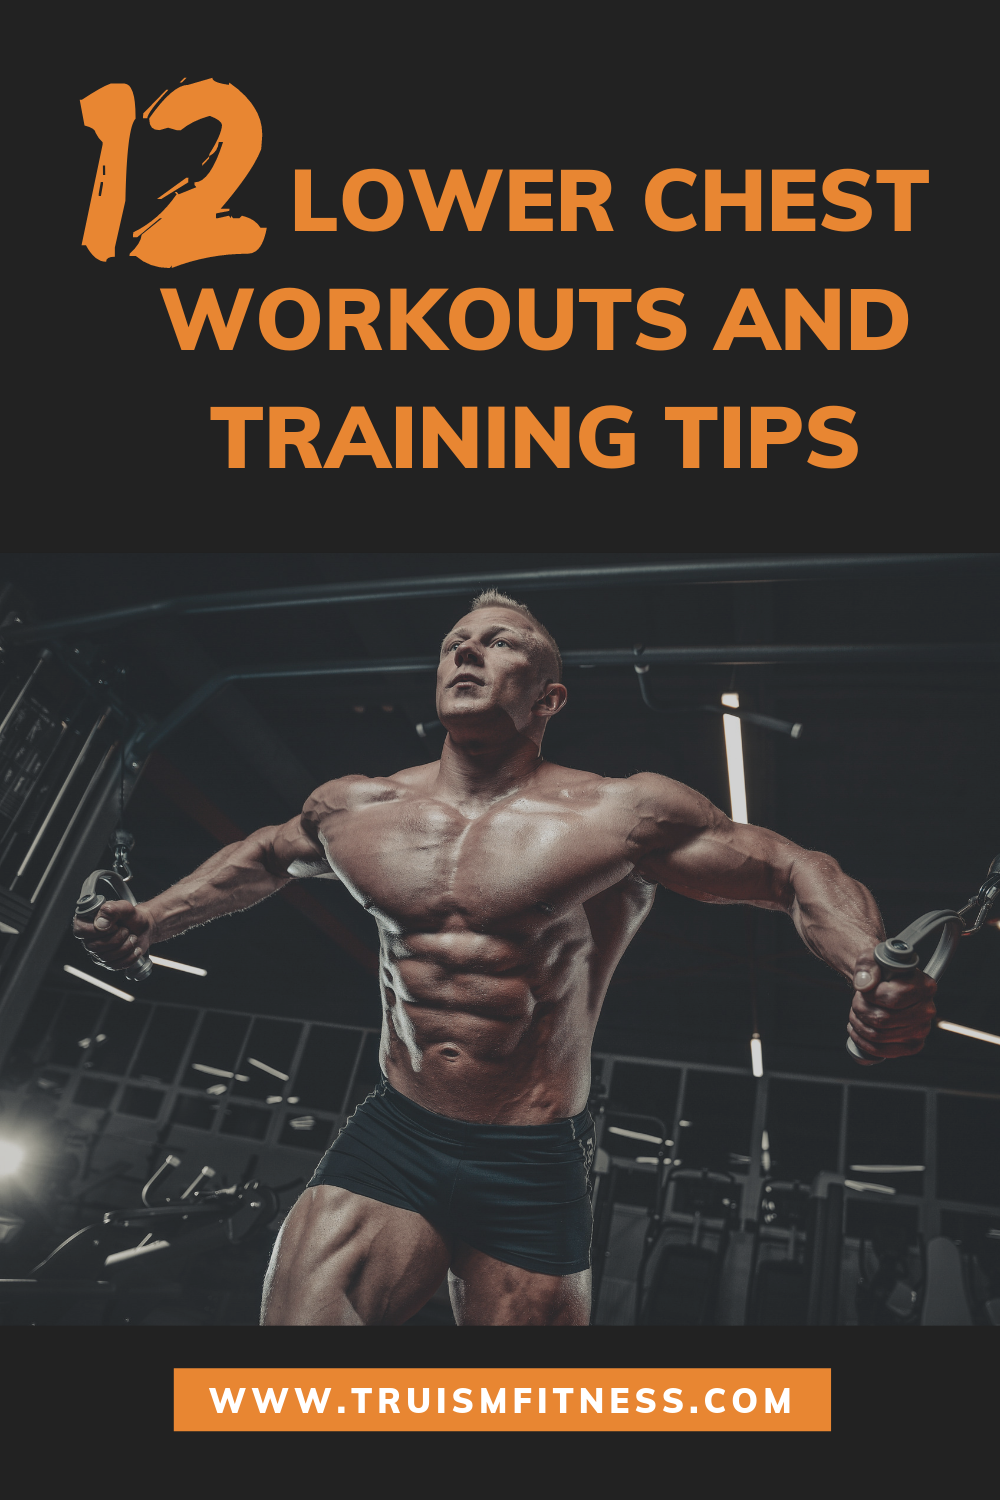 12 lower chest workouts and training tips Lower chest